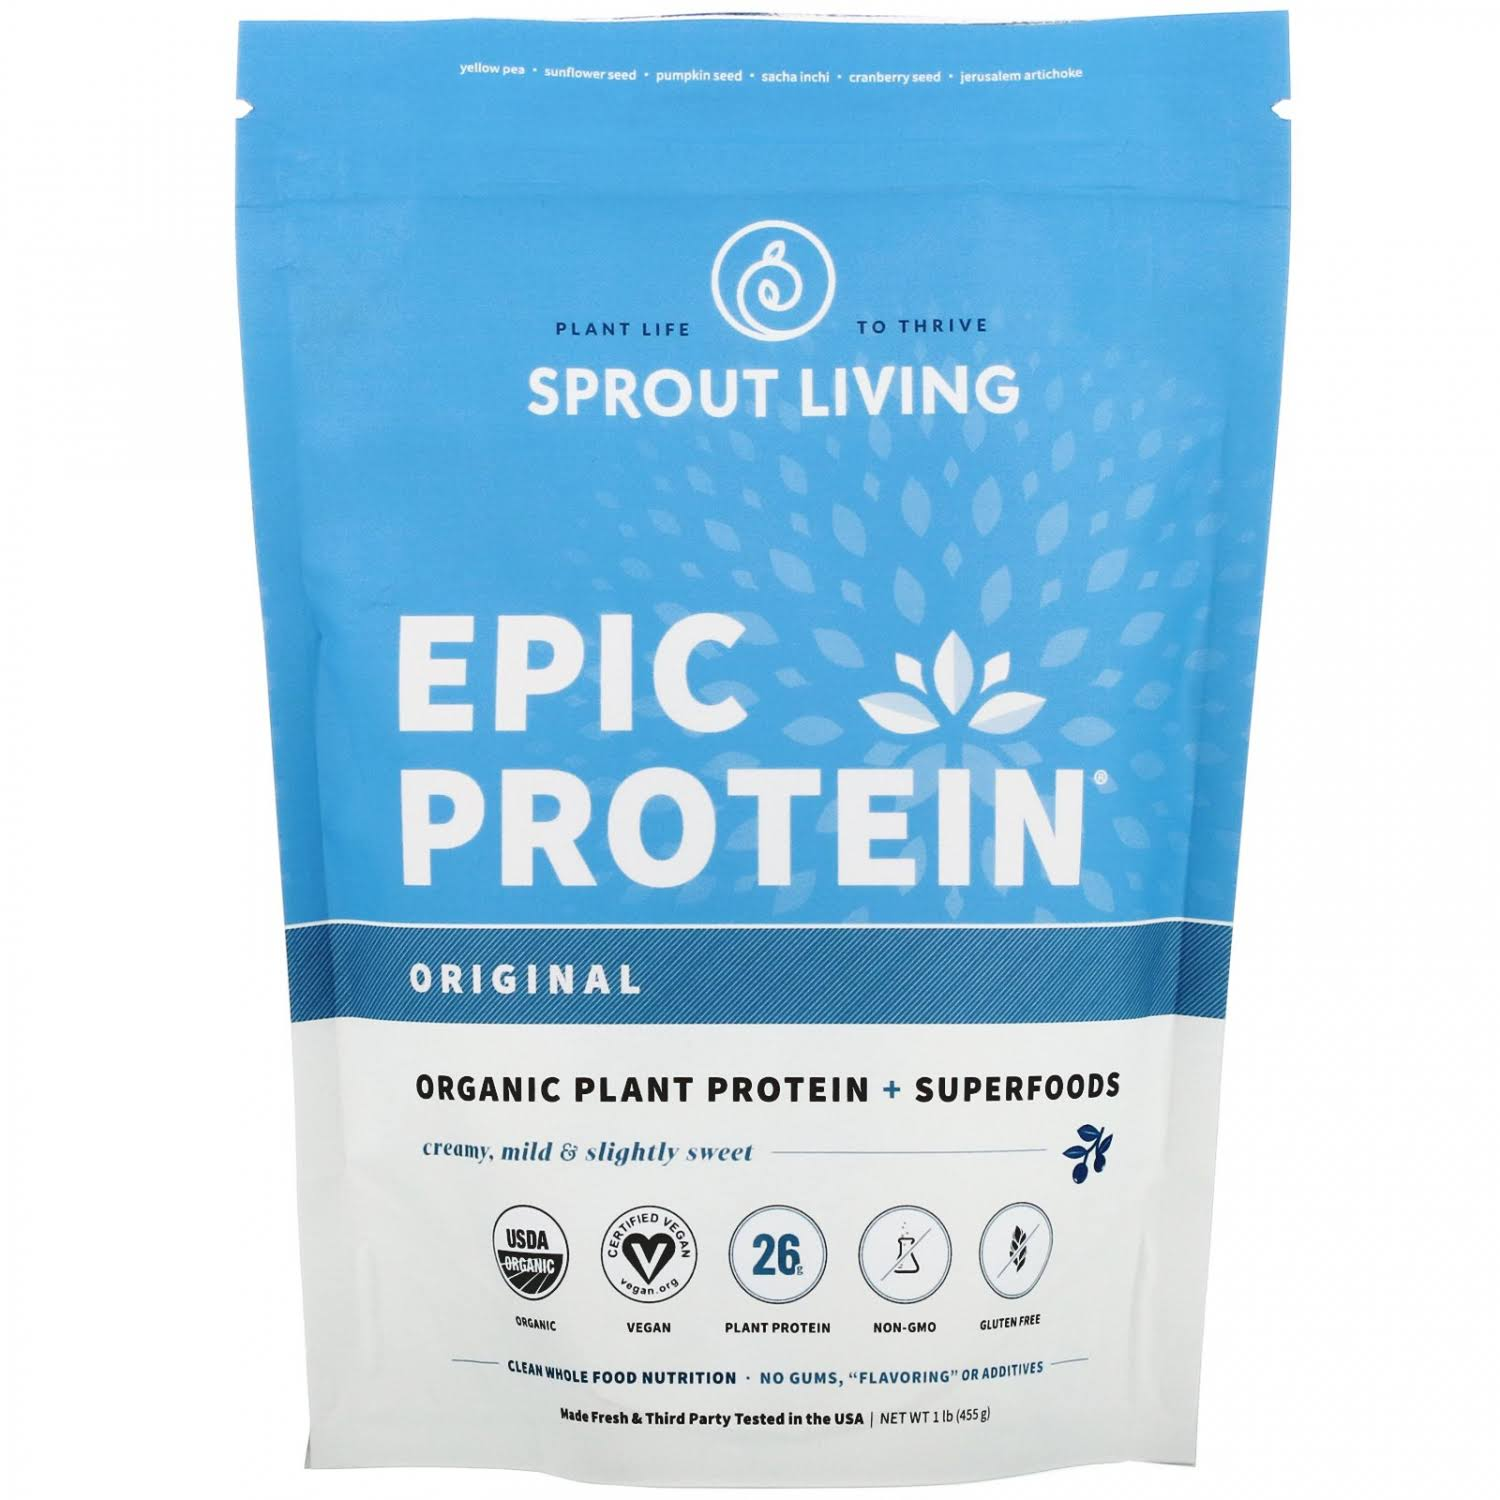 Sprout Living Epic Plant-based Protein Powder - Original, 1lb